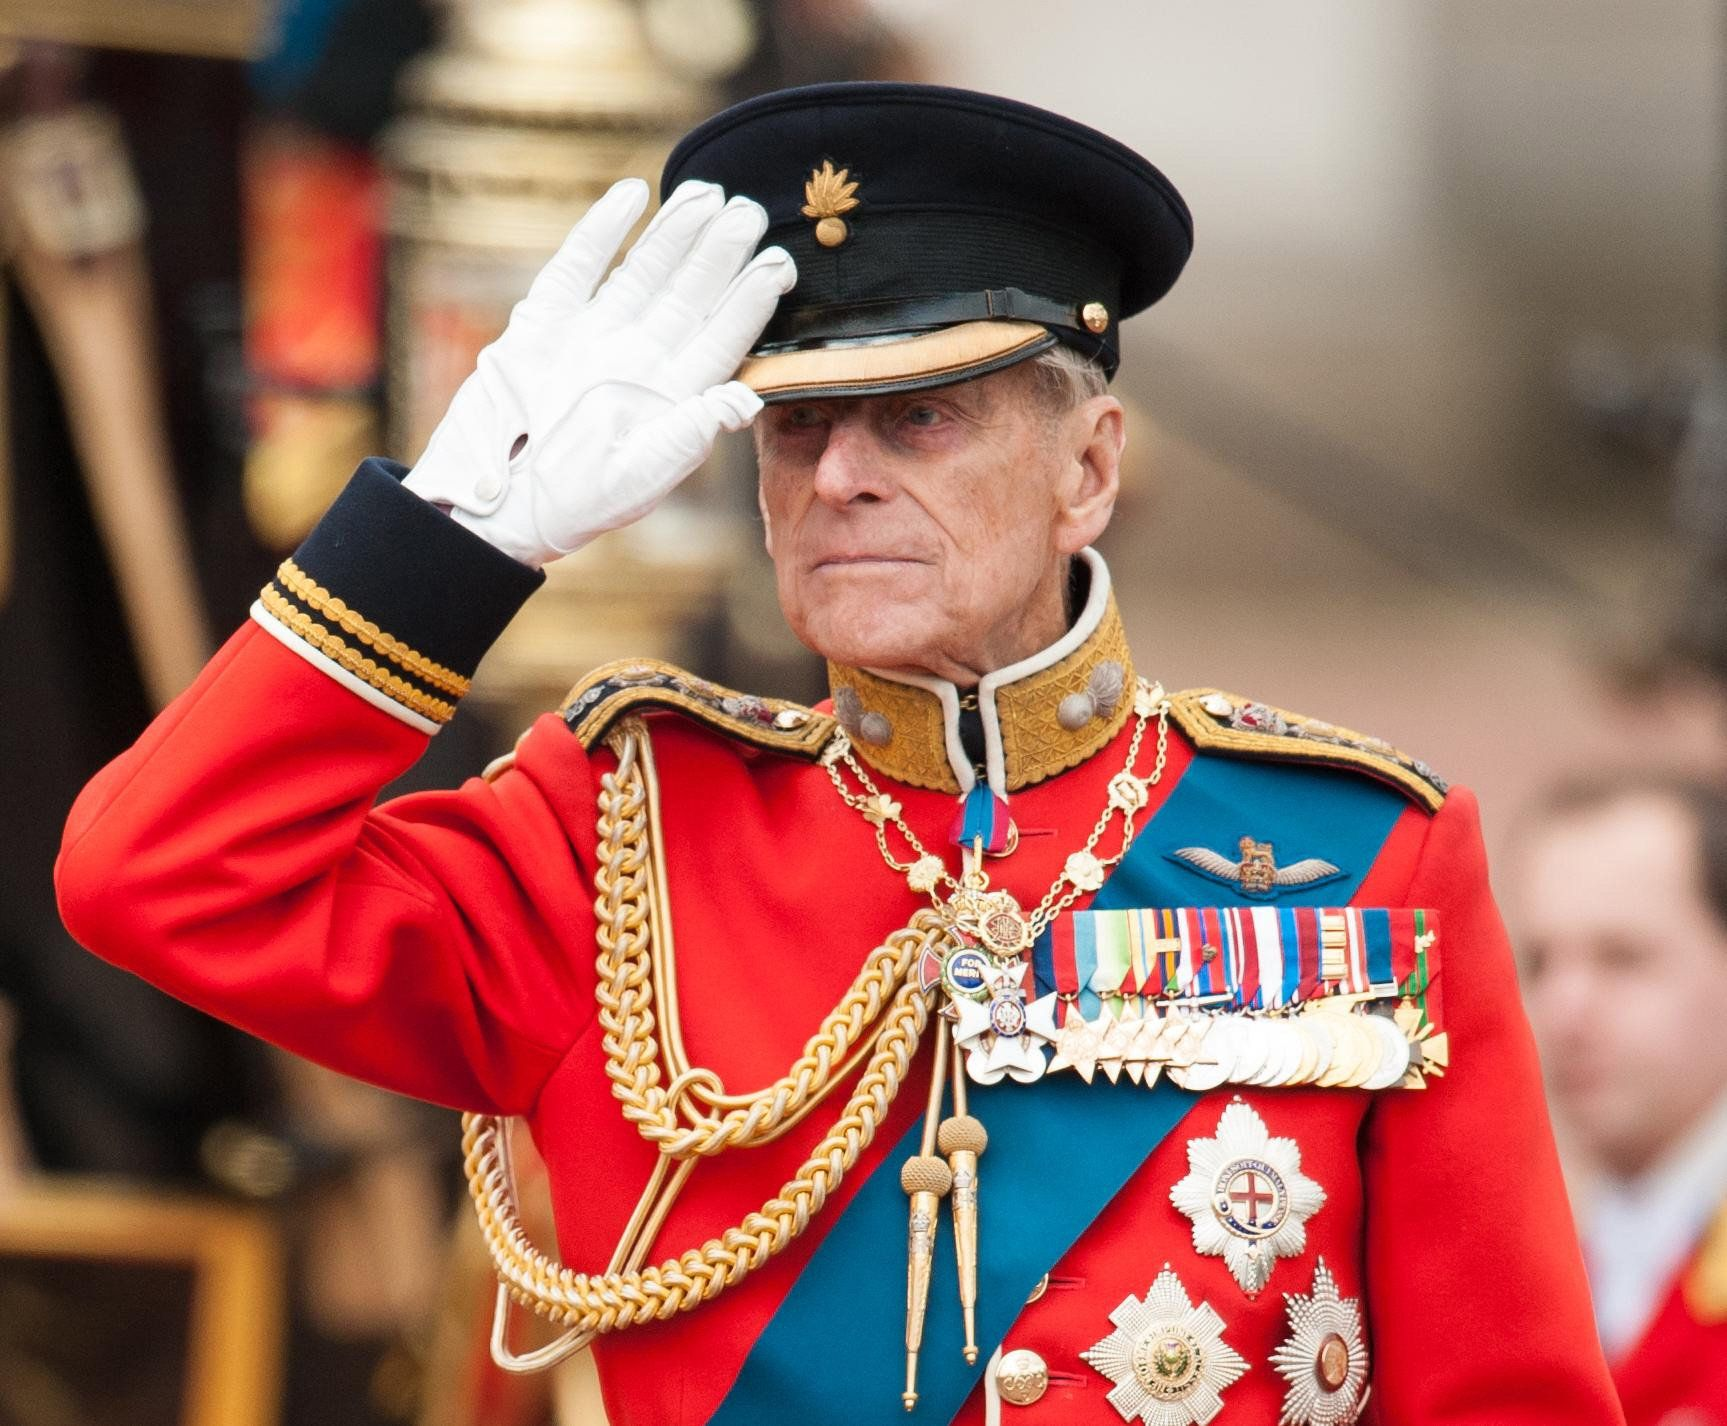 Prince Philip To Meet Royal Marines Today In Final Public Event Before